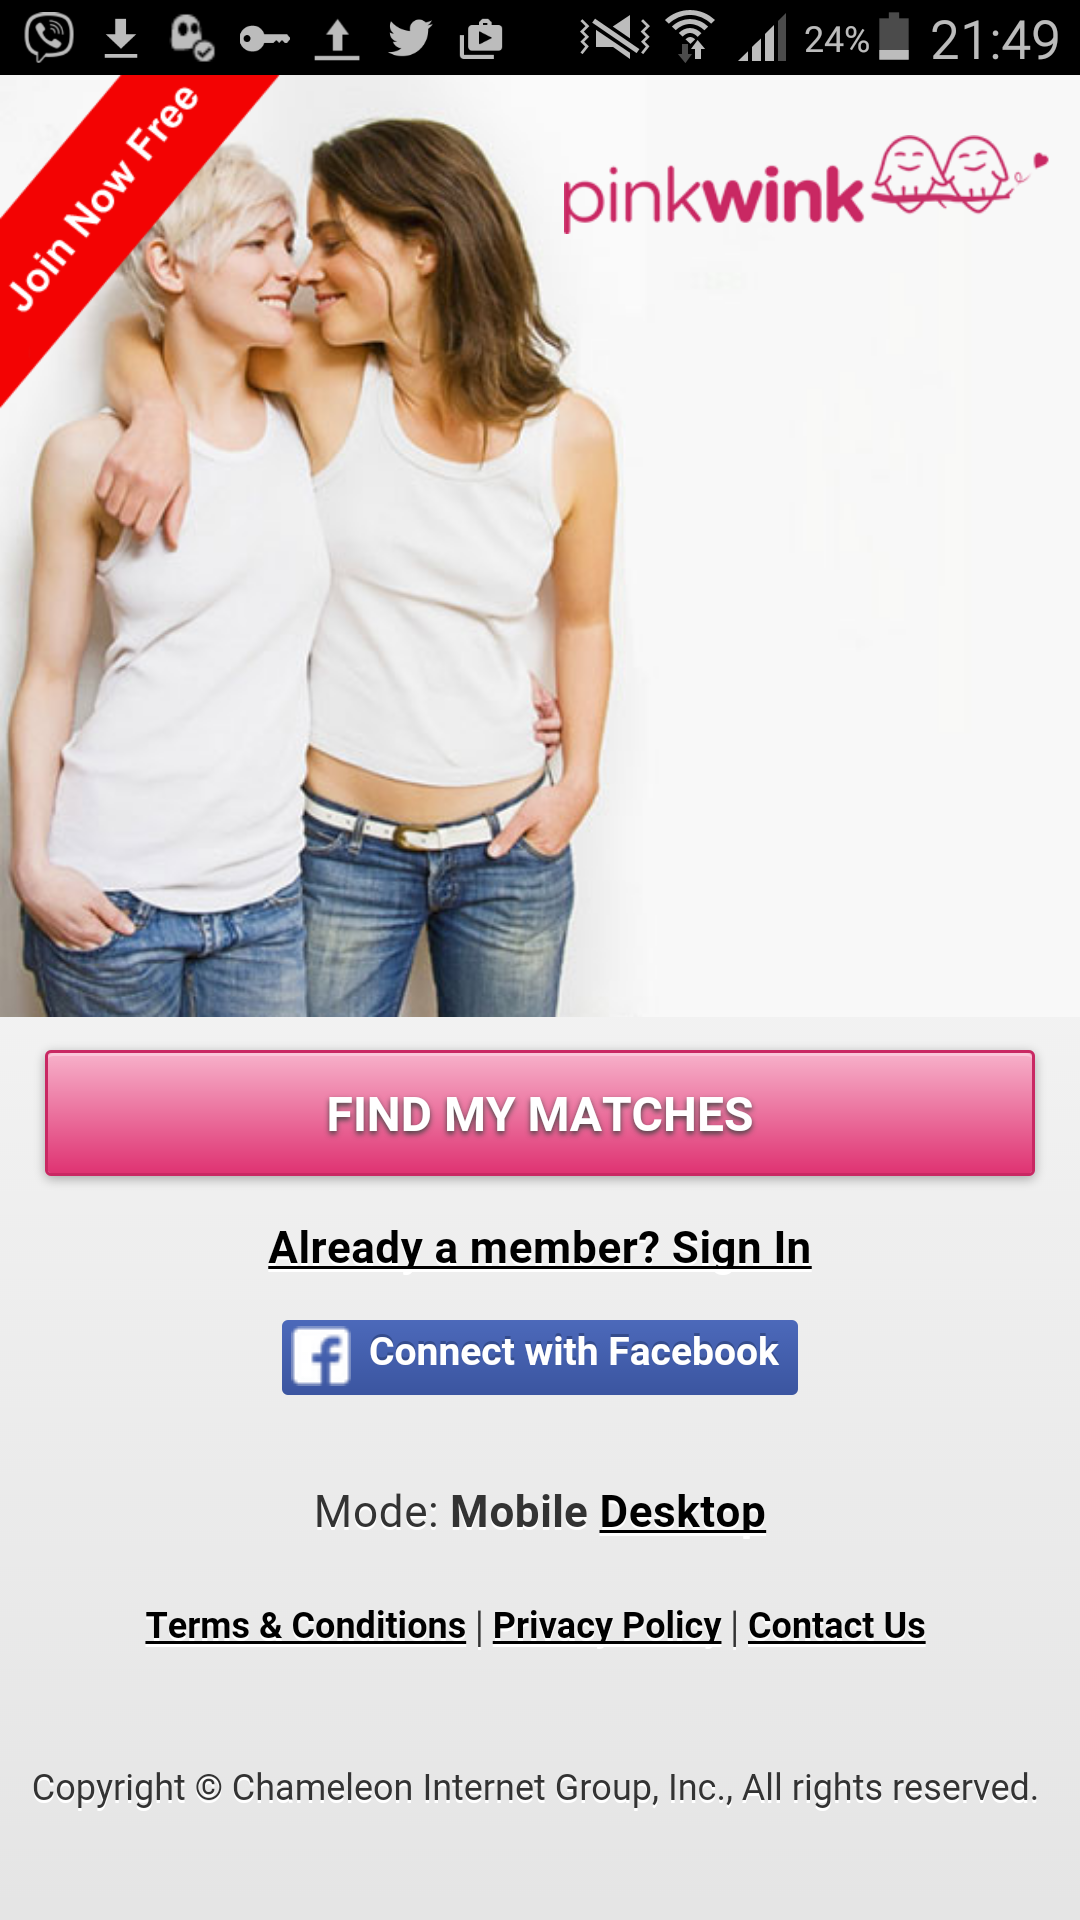 chugwater lesbian dating site Trusted lesbian dating site for senior singles using 29 dimensions of compatibility, we connect single senior lesbians searching for true love join free.